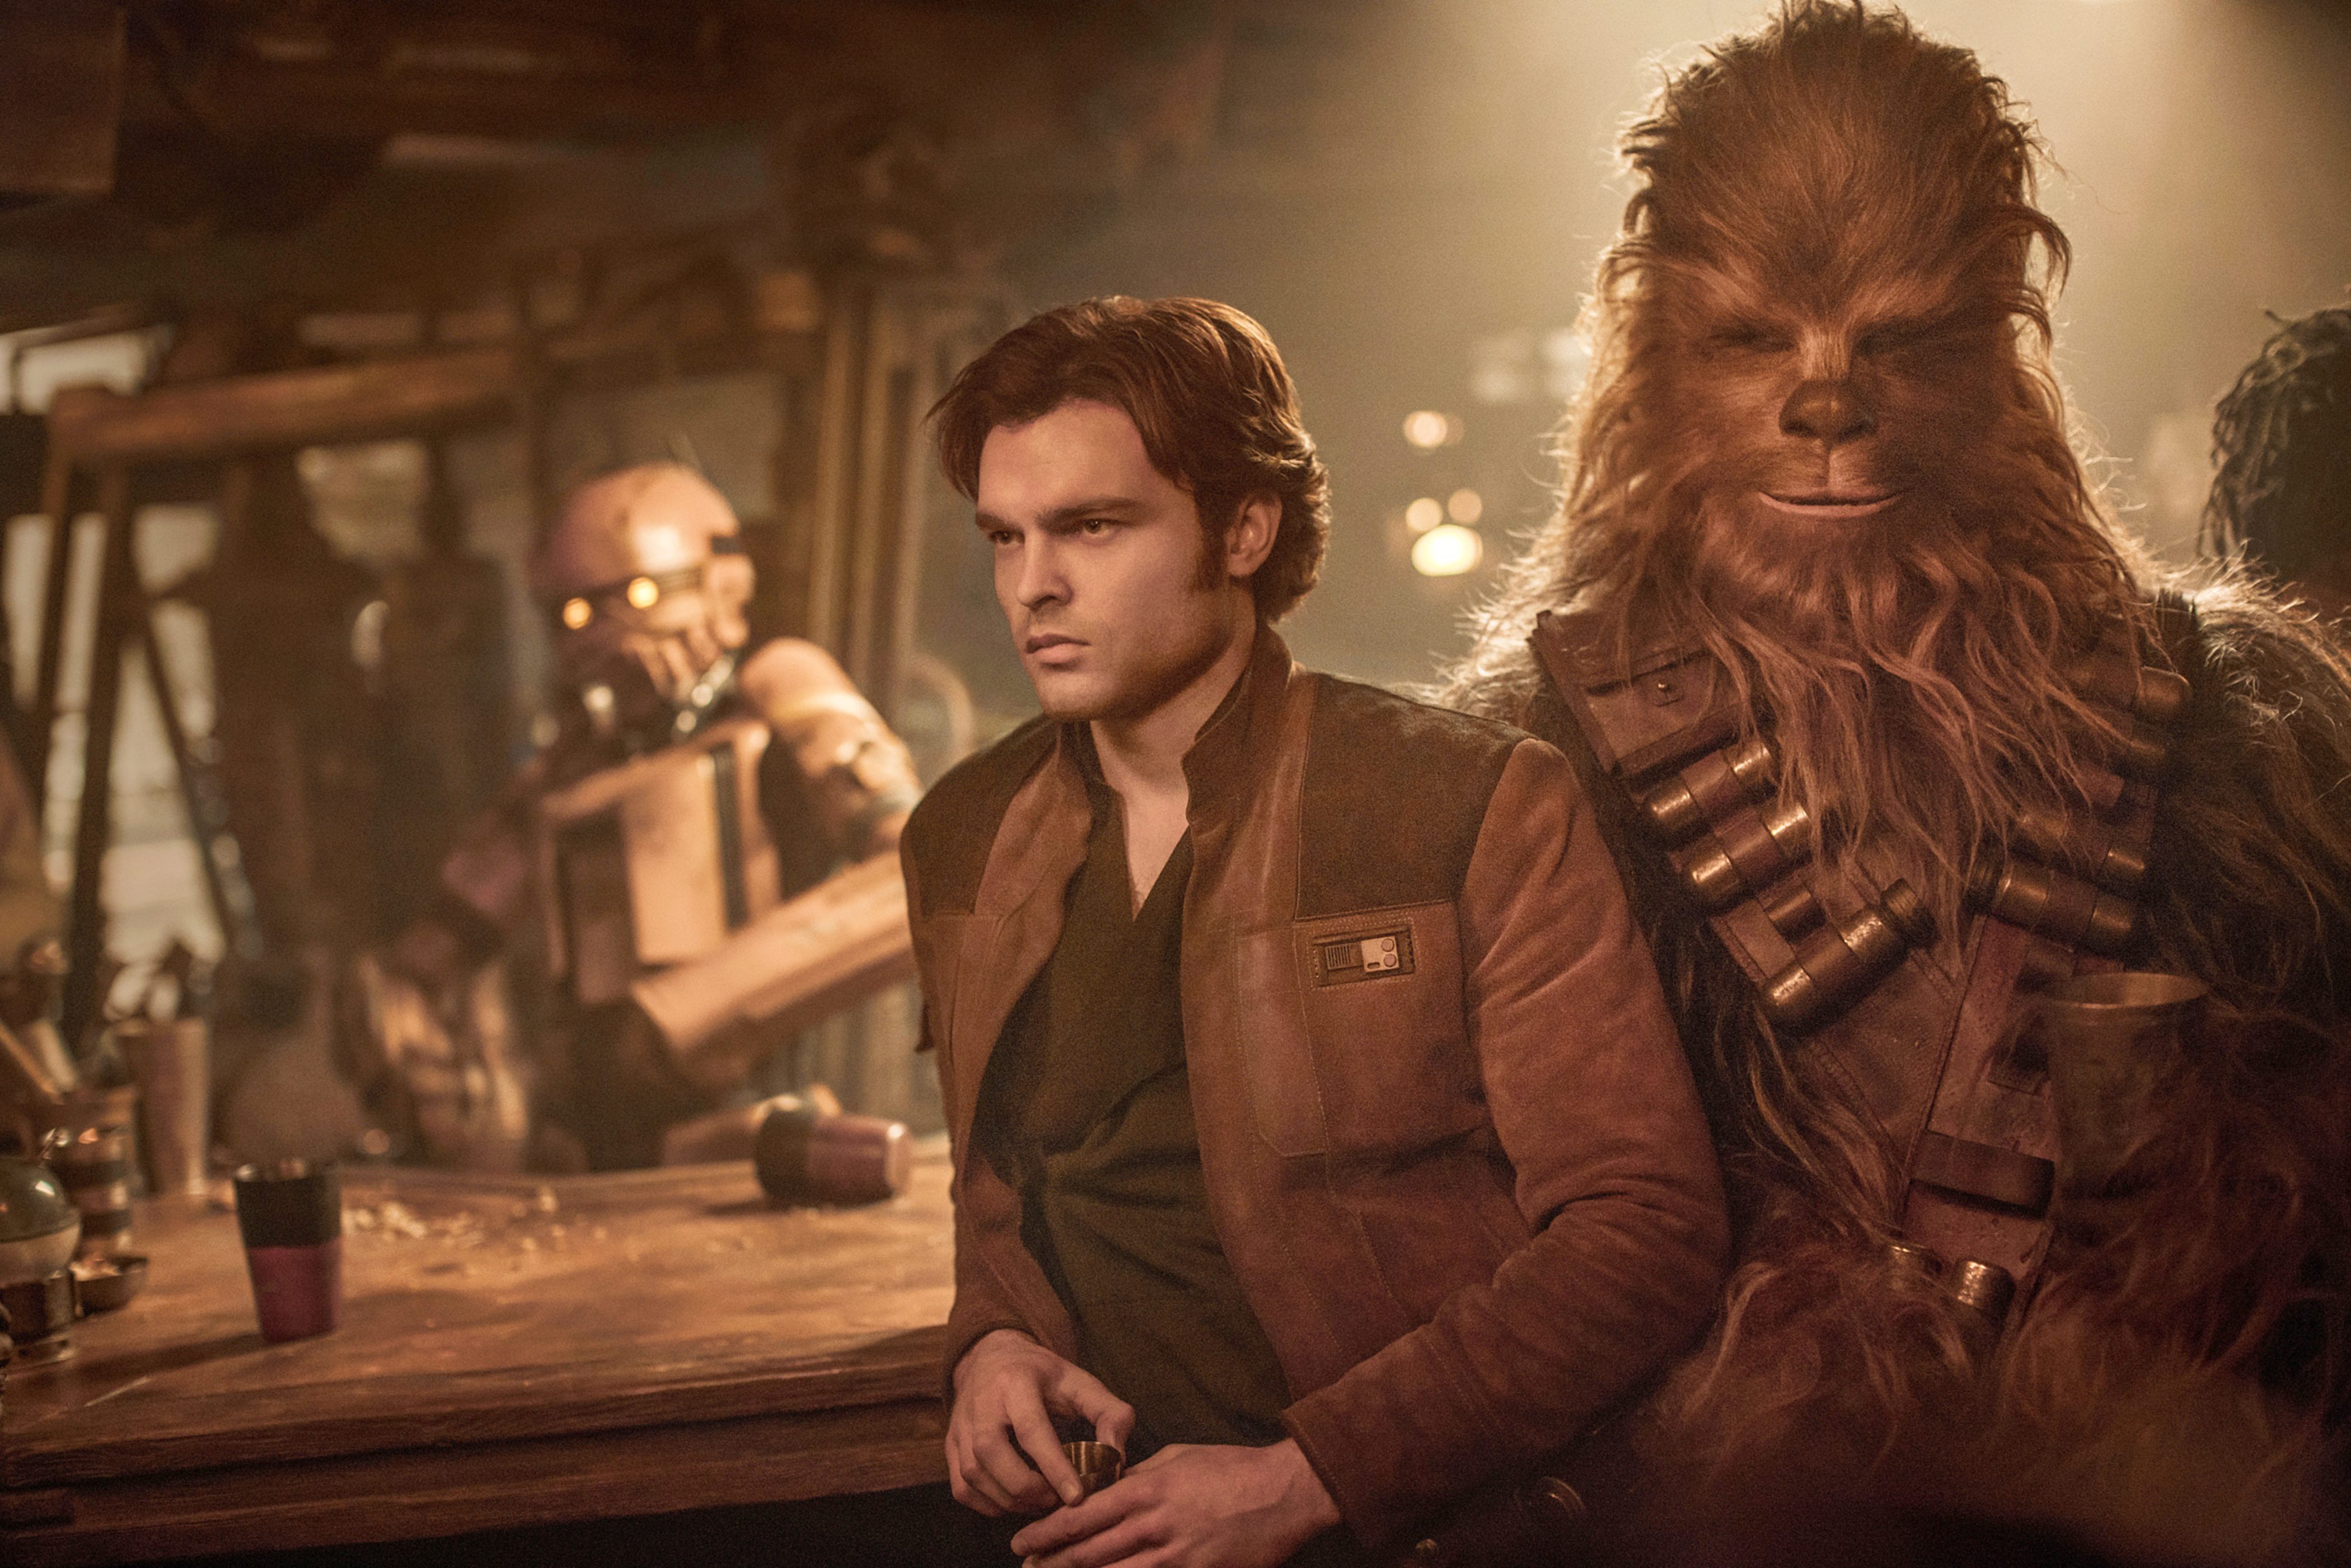 'Star Wars' Fans Are Trying To #MakeSolo2Happen With New Social Media Campaign